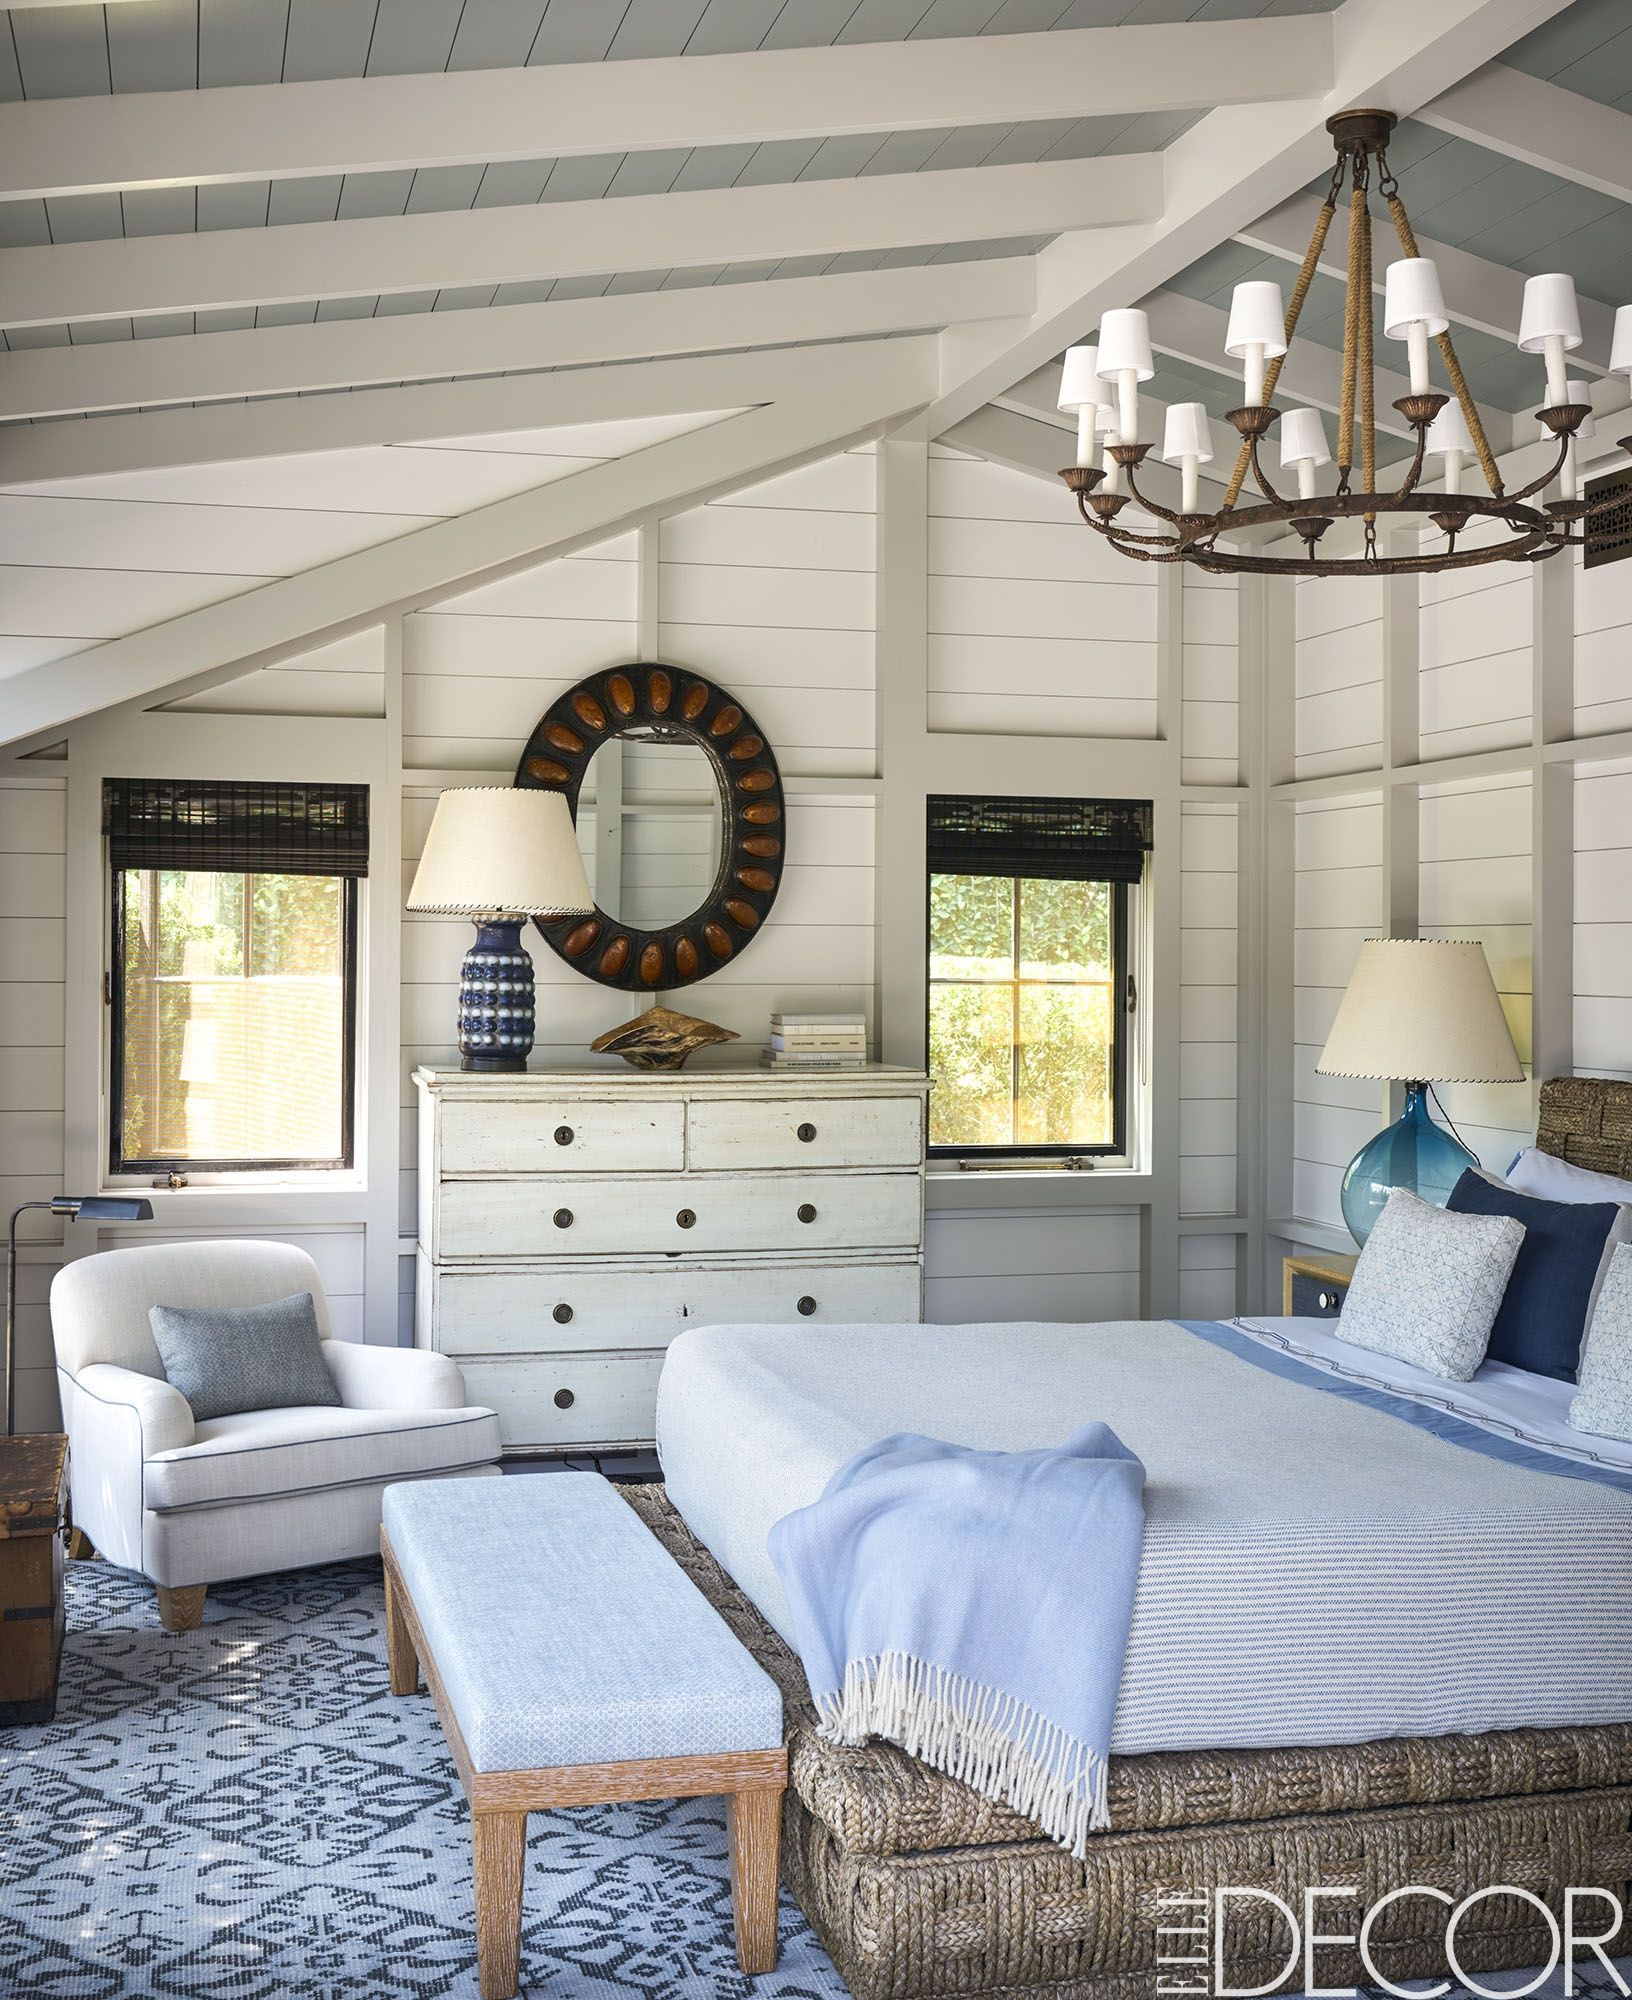 has pin in this headboard wicker featured a style coastal is woven panel bed white beds